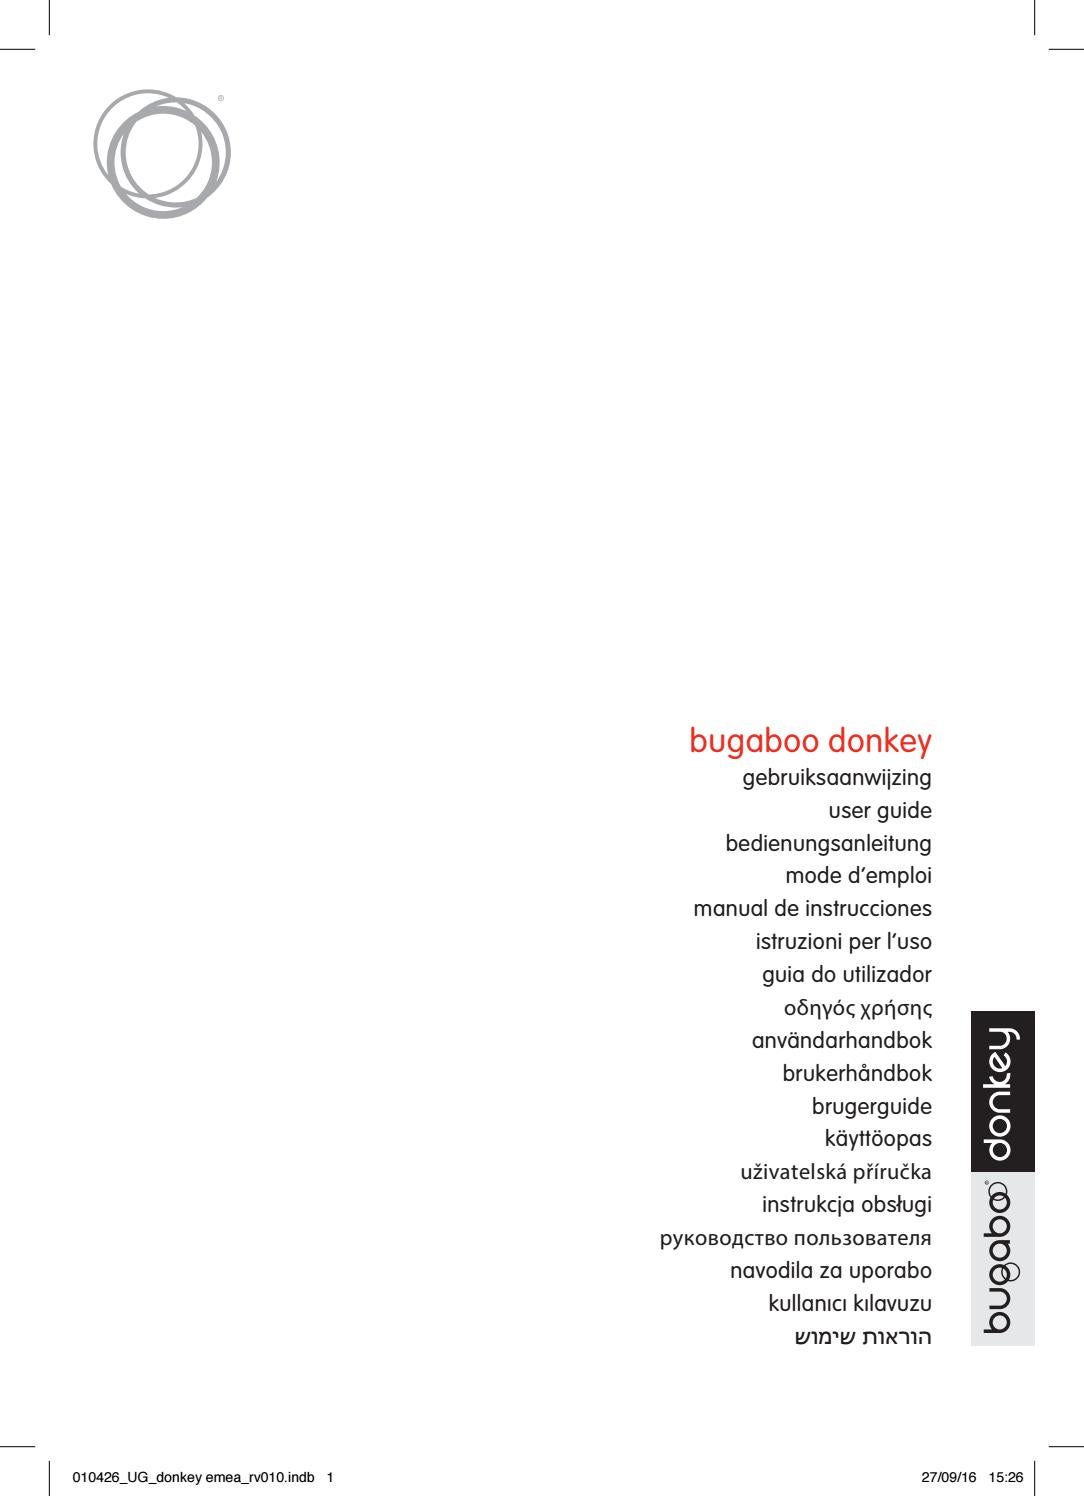 bugaboo donkey user guide emea by bugaboo international issuu rh issuu com bugaboo user guide cameleon bugaboo user guide cameleon